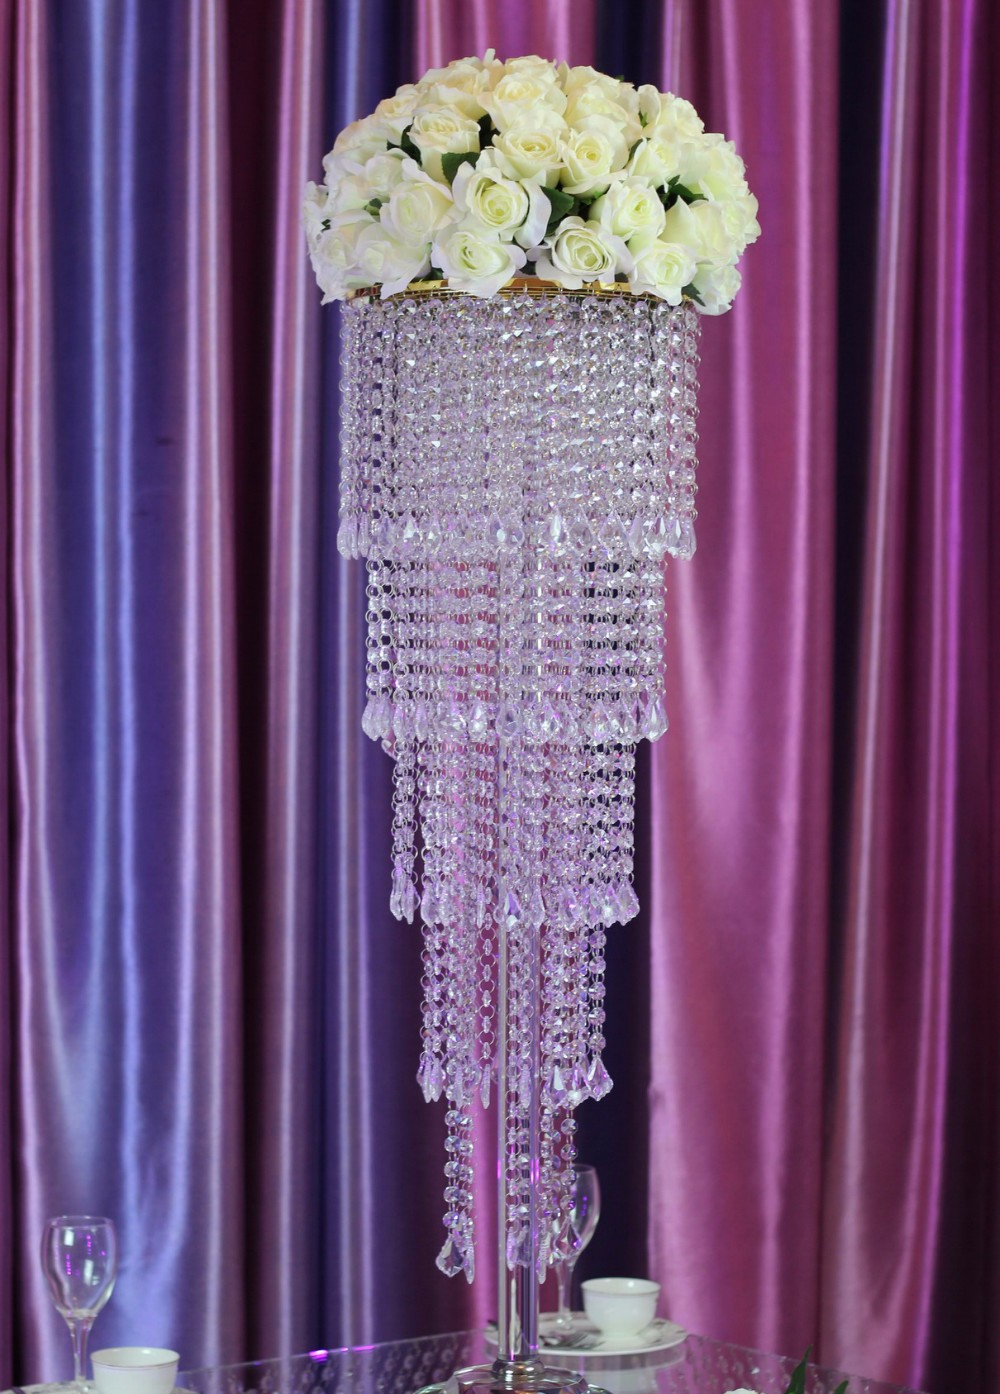 buy 80cm tall crystal table centerpiece wedding decoration flower stand wedding. Black Bedroom Furniture Sets. Home Design Ideas